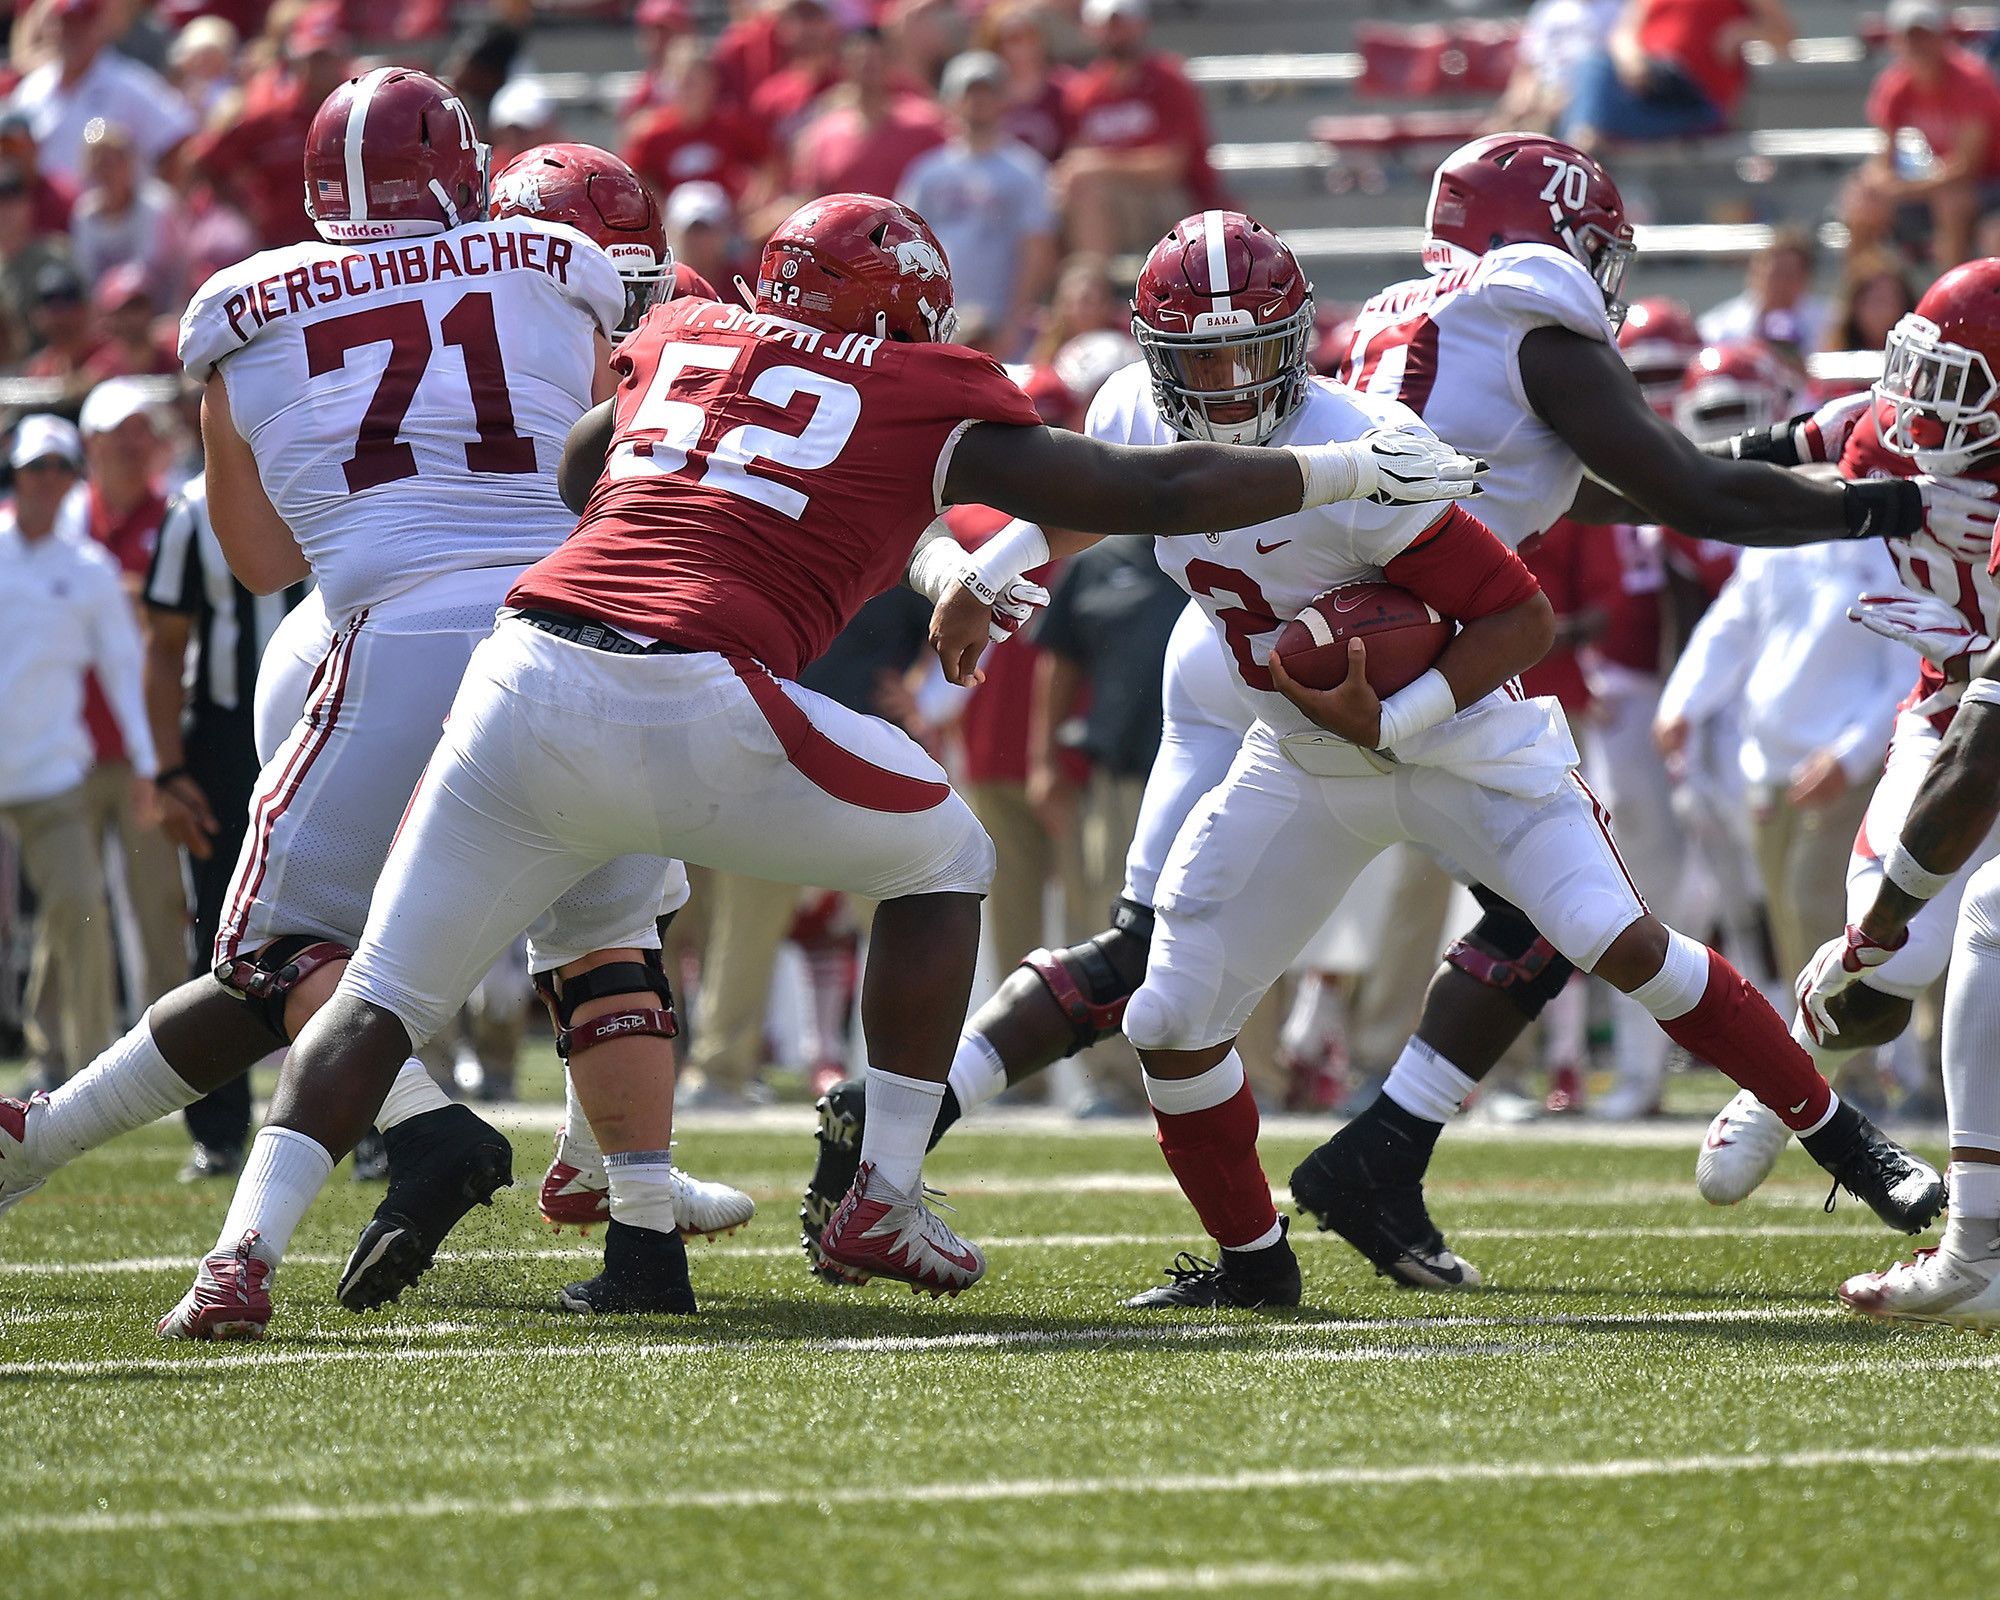 From the second half of the NCAA football game between the Arkansas Razorbacks and the Alabama Crimson Tide at Razorback Stadium on Oct. 6, 2018, in Fayetteville, Ark. Alabama defeated Arkansas 65-31. (Photo by Lee Walls)